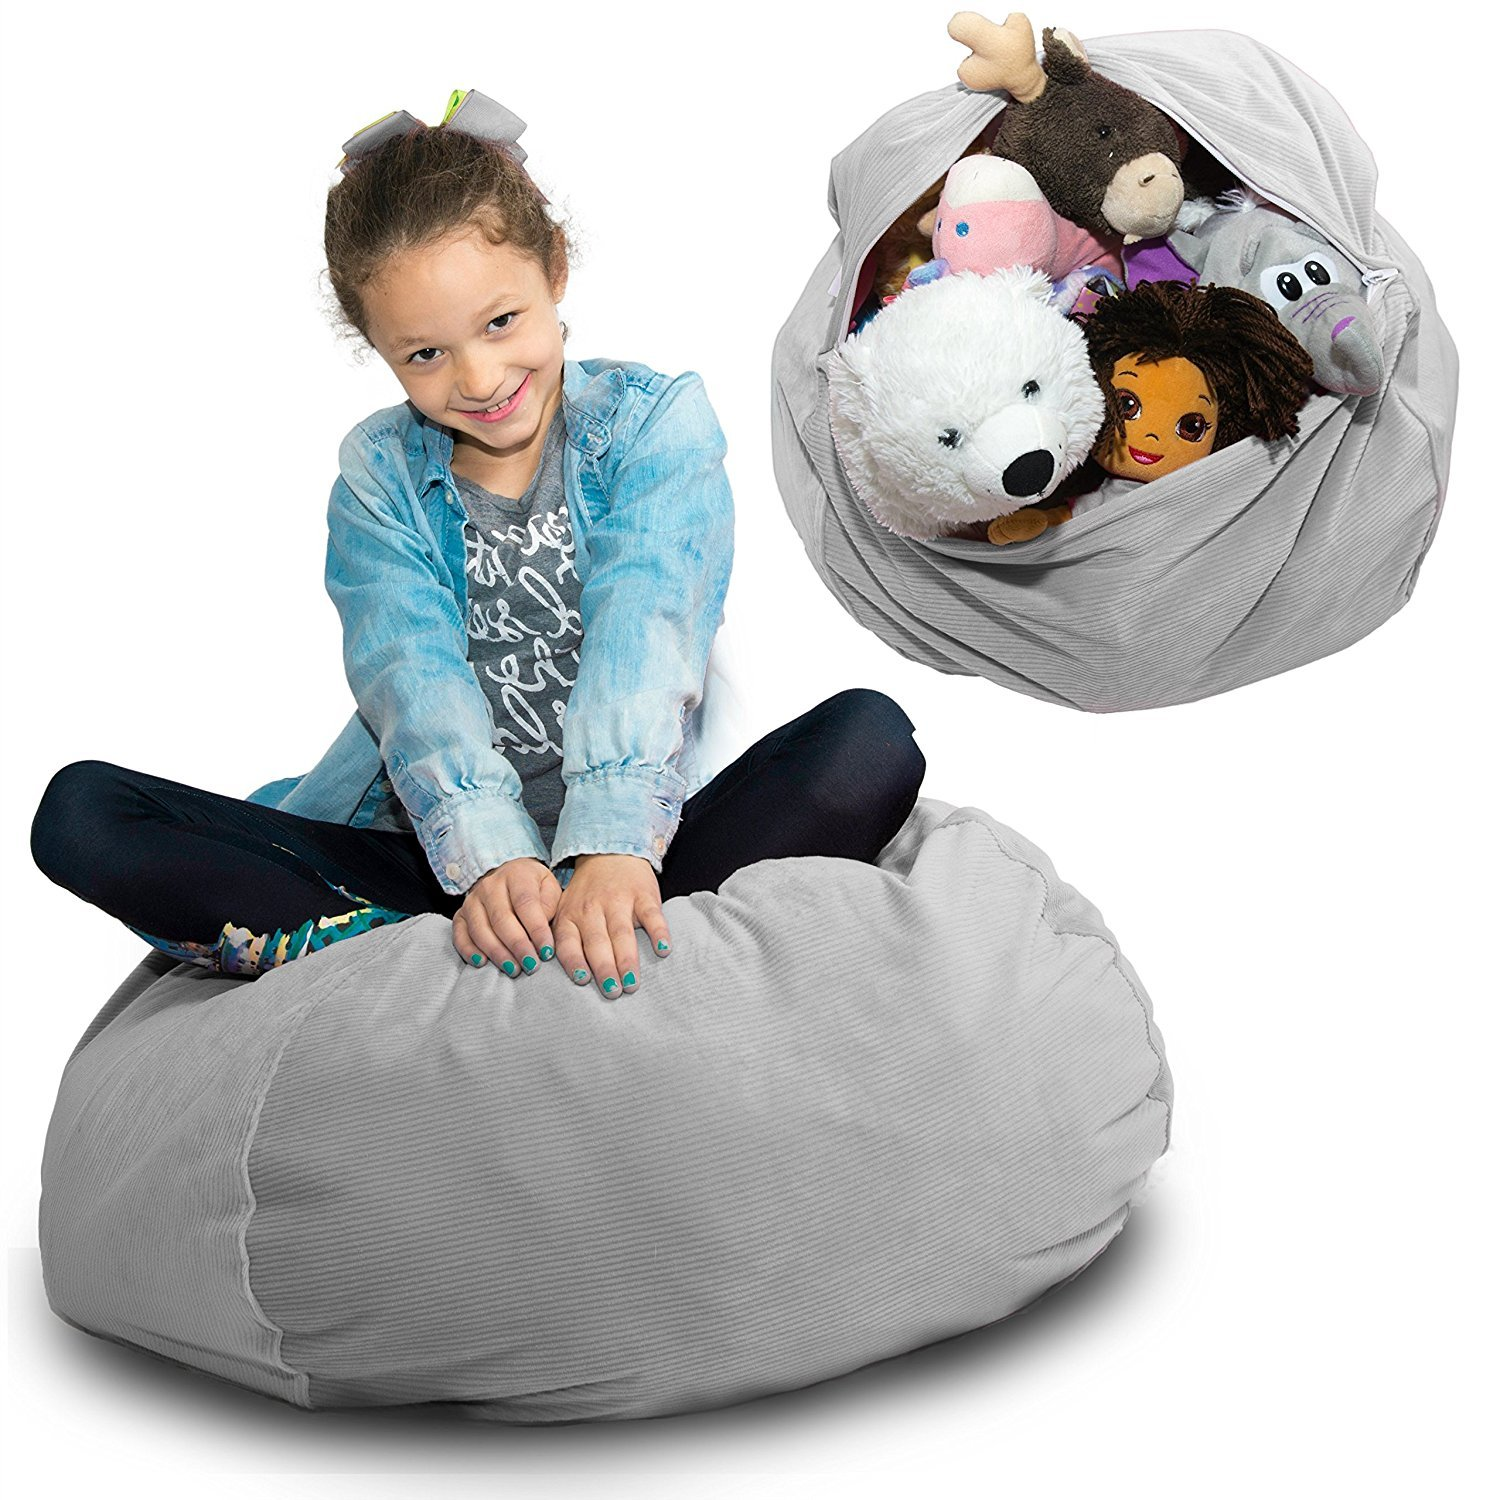 LARGE Stuffed Animal Storage Bean Bag   U201cSOFT U0027n SNUGGLYu201d Corduroy Fabric  Kids Prefer Over Canvas   Replace Mesh Toy Hammock Or Net   Better Than  Space ...